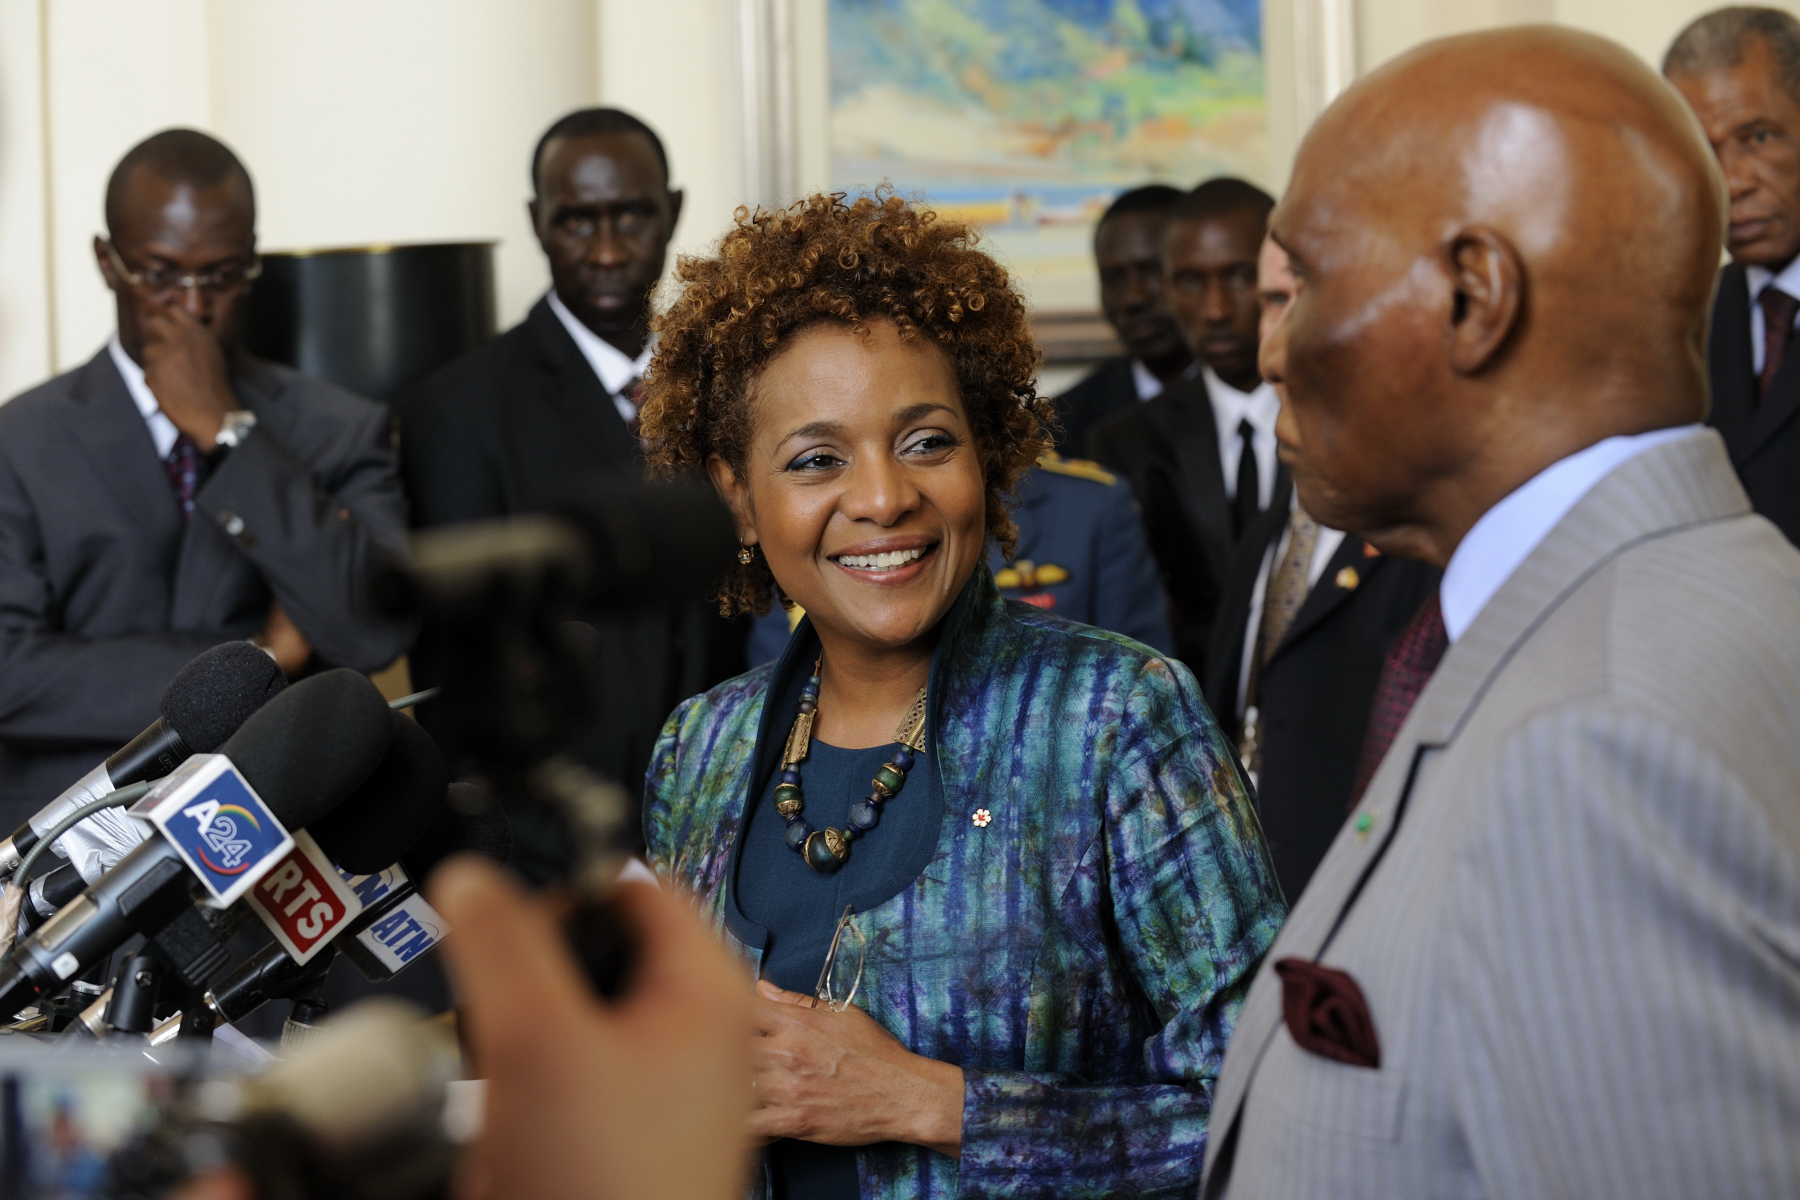 The Governor General and the President of Senegal made statements to the media following their meeting.